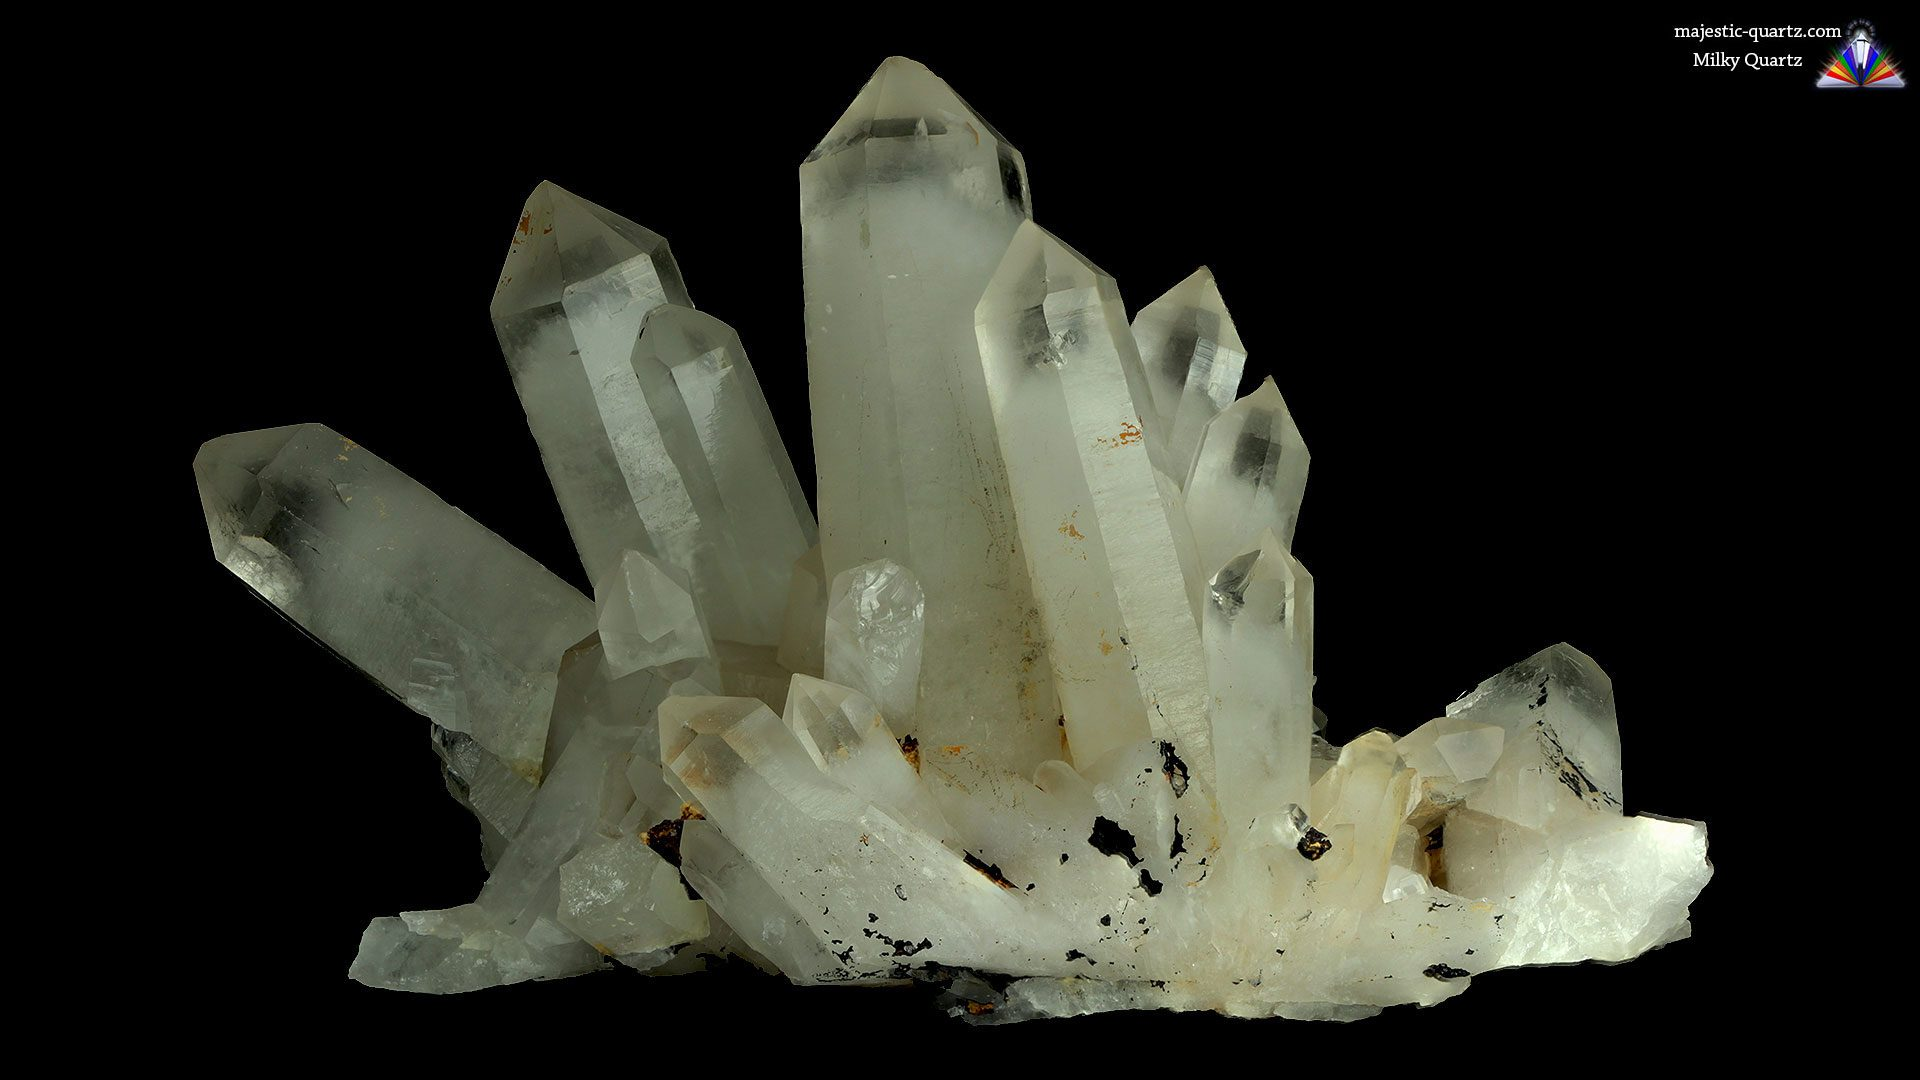 Milky Quartz Properties and Meaning - Photograph by Anthony Bradford